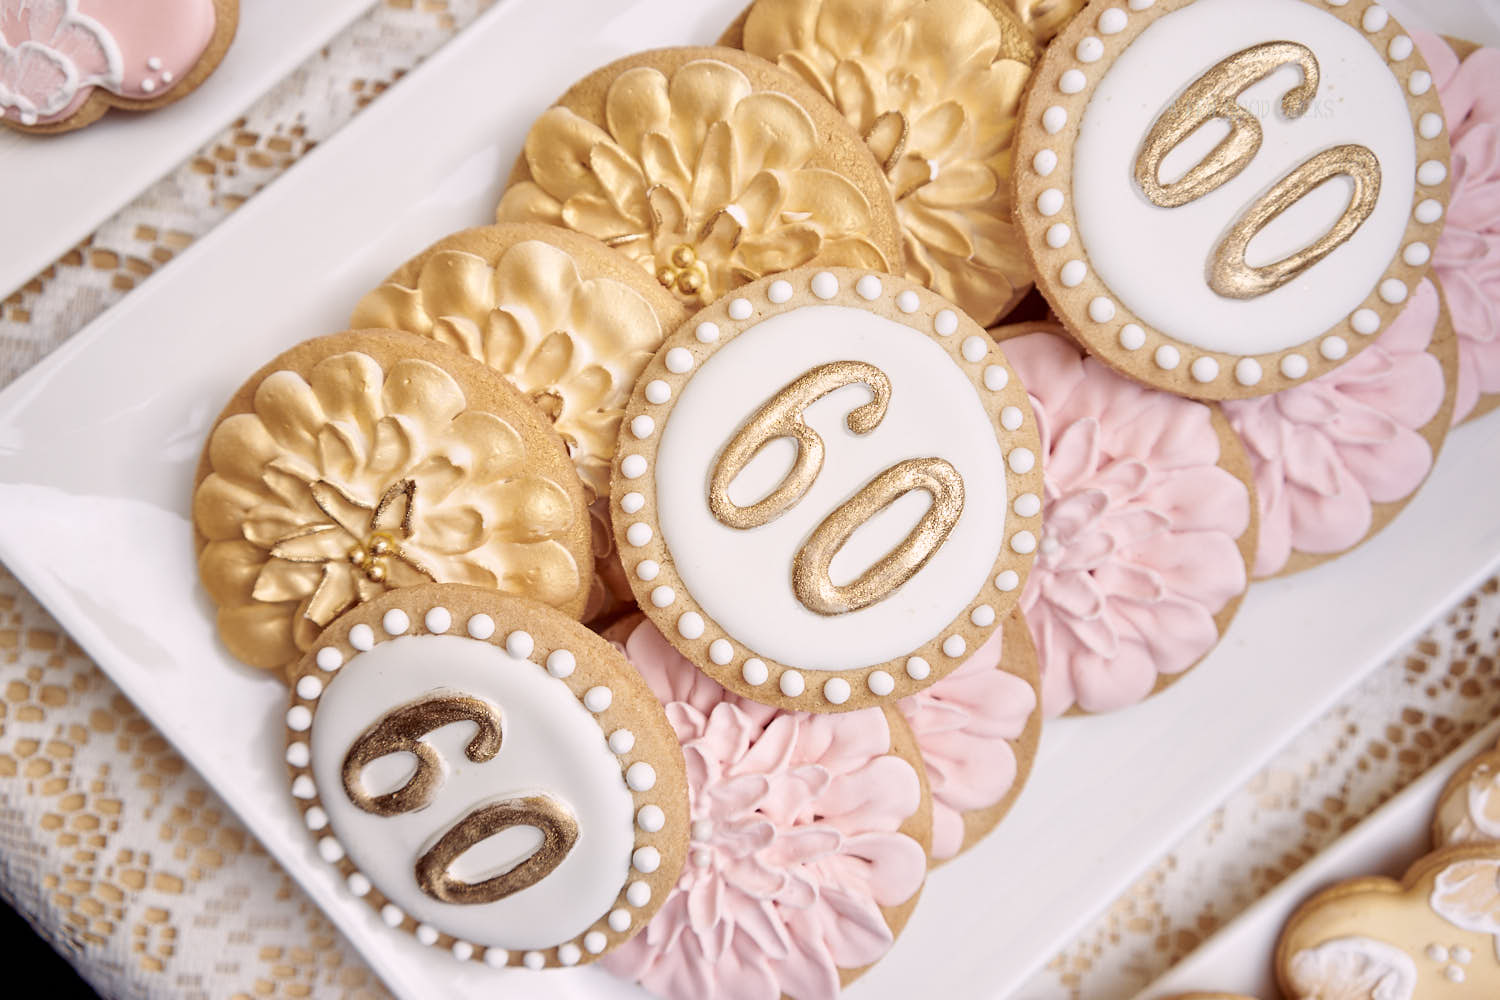 Handmade 60th Birthday cookies are hard to resist especially when they are dipped in gold & pink icing.